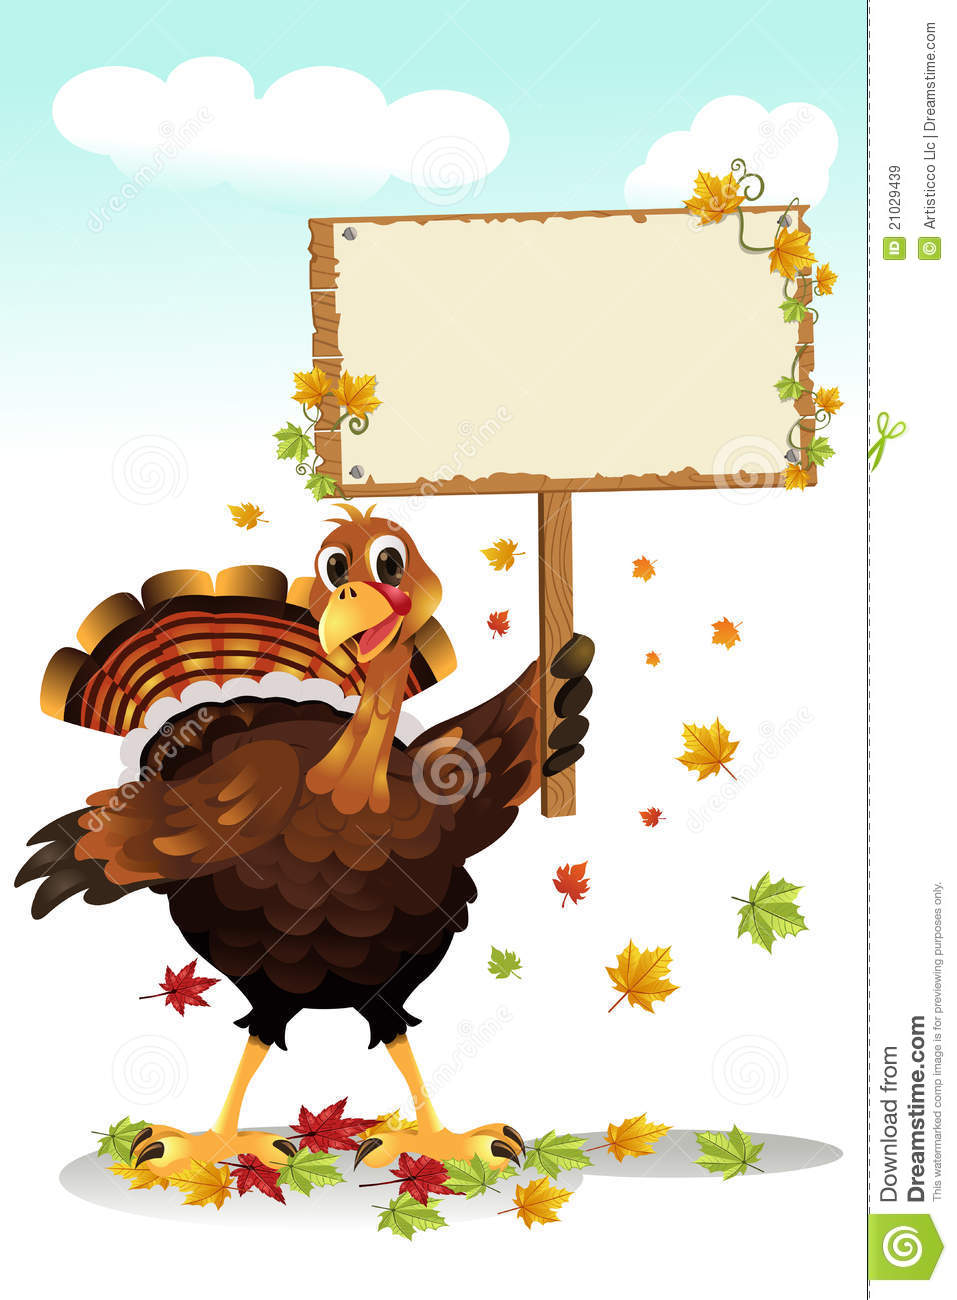 Pretty Girl Wallpaper Free Download Turkey Holding A Sign Royalty Free Stock Images Image